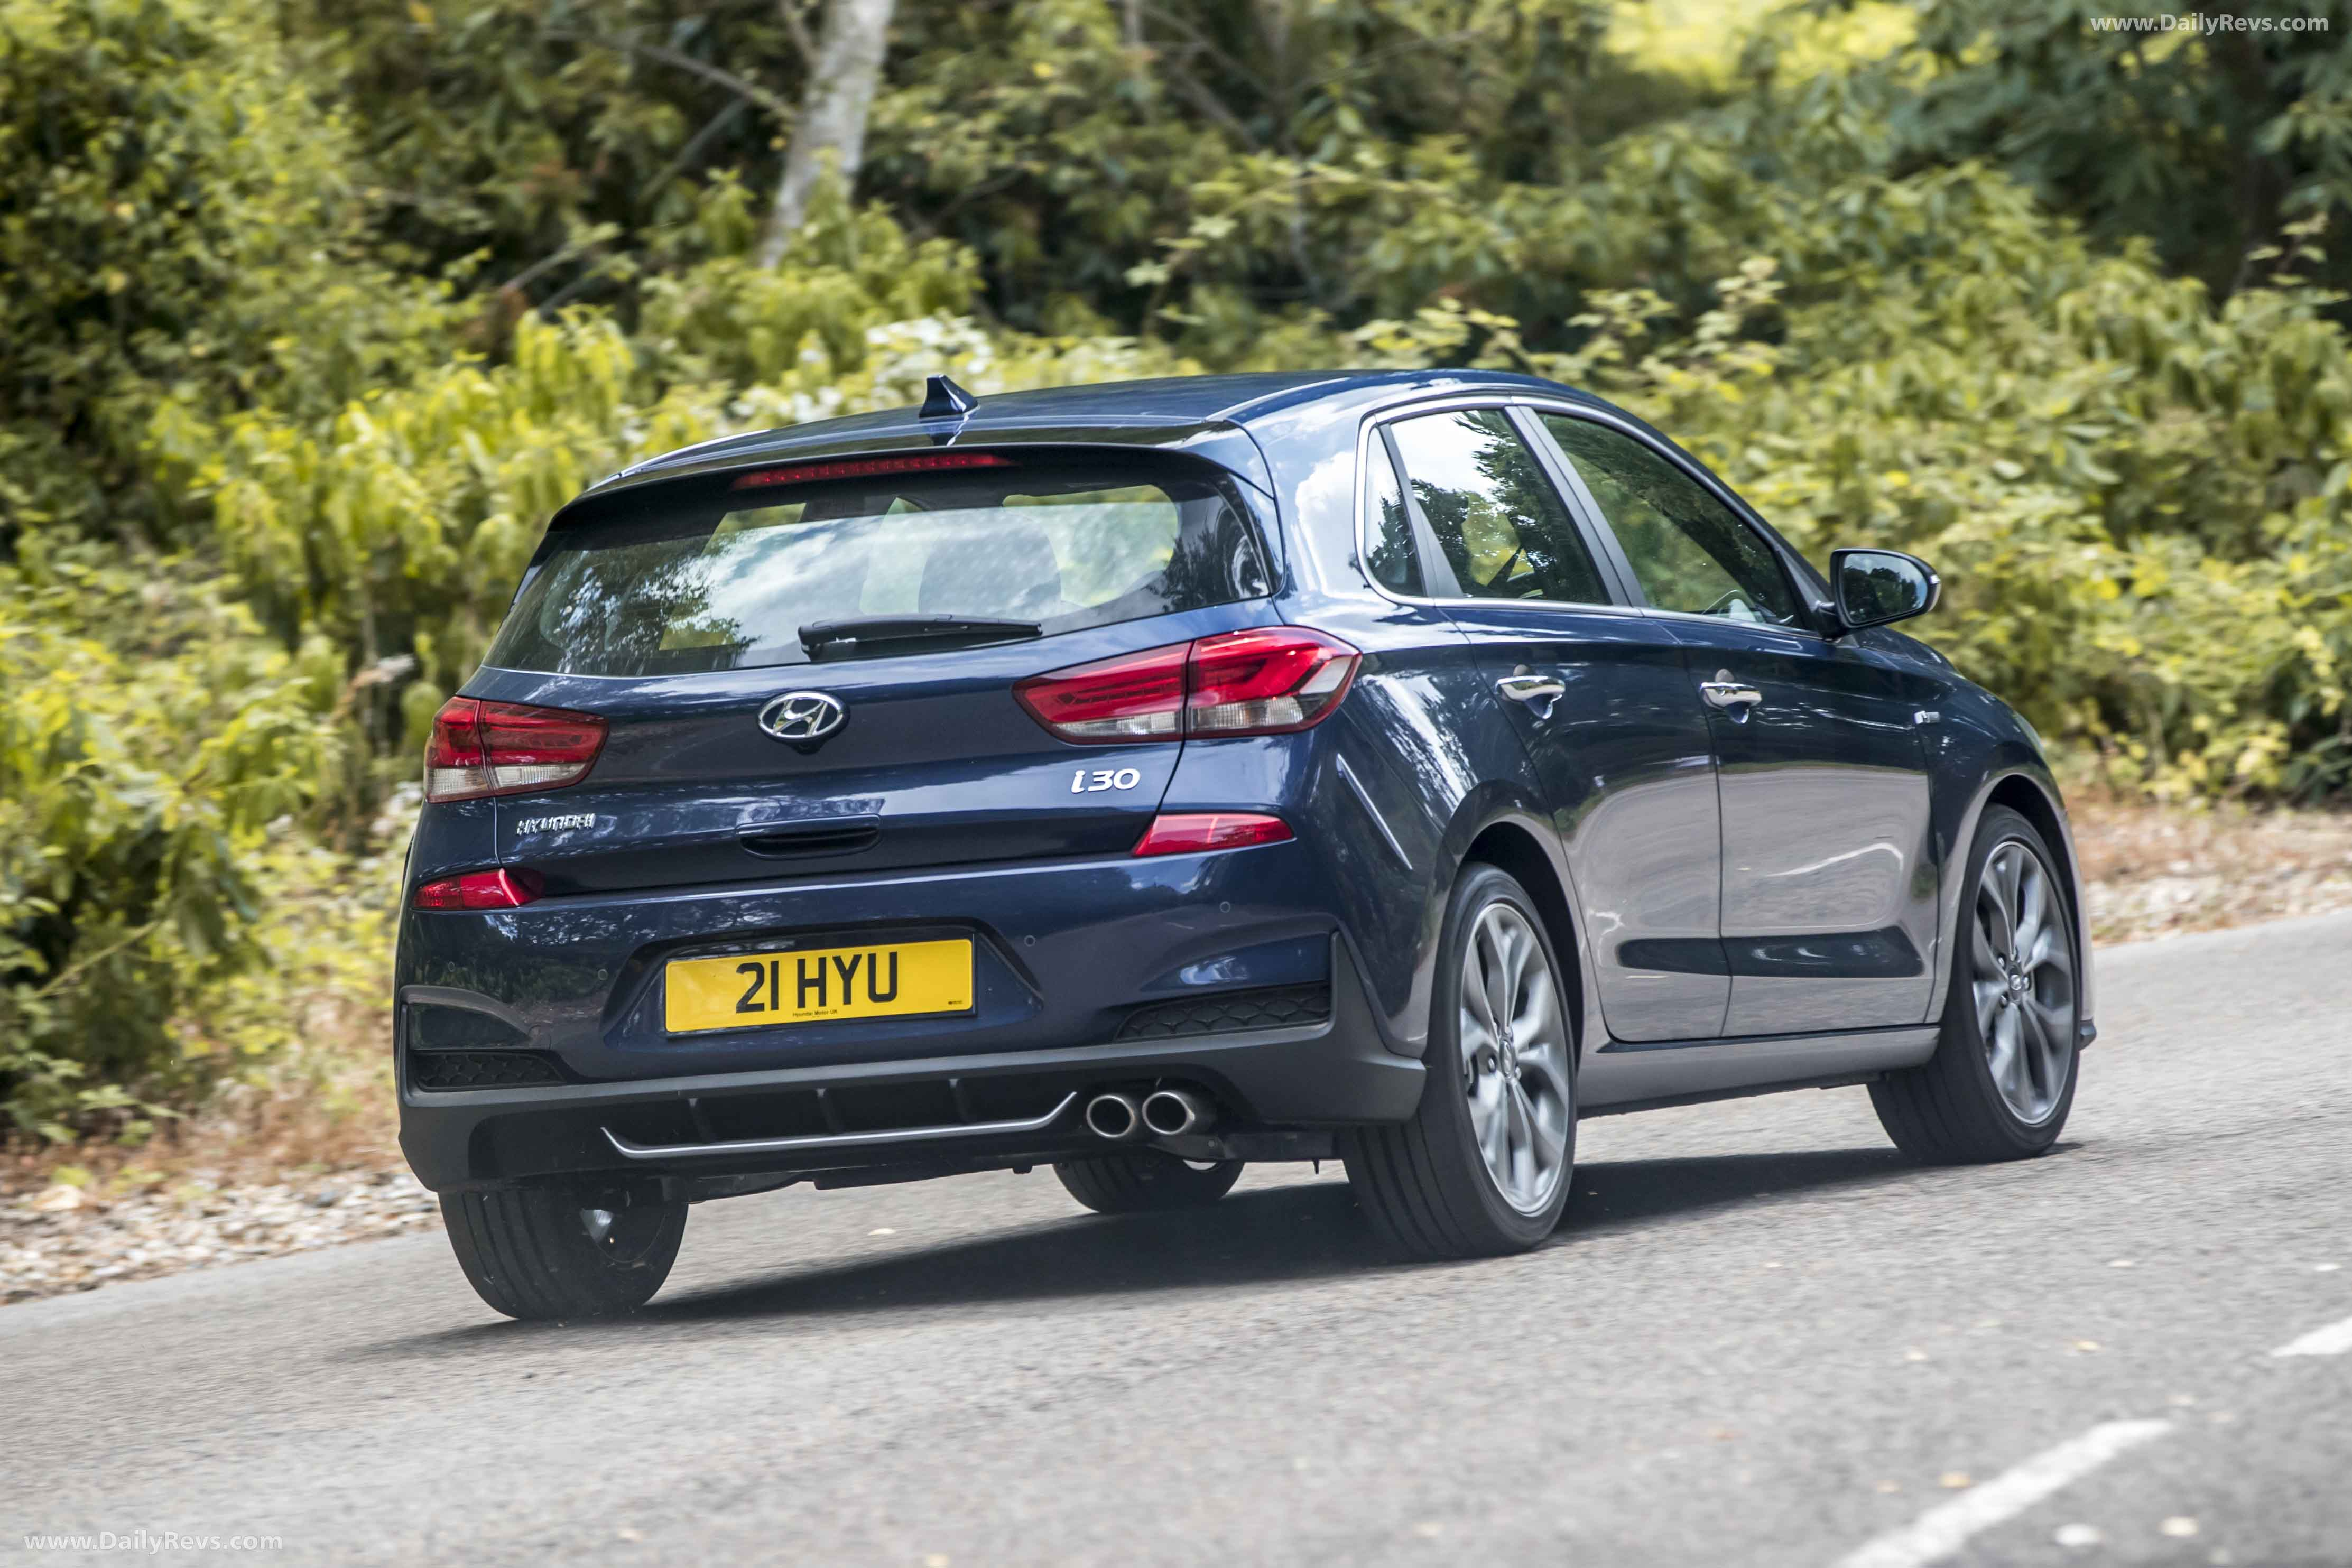 2019 Hyundai i30 N Line - HQ Pictures, Specs, information ...